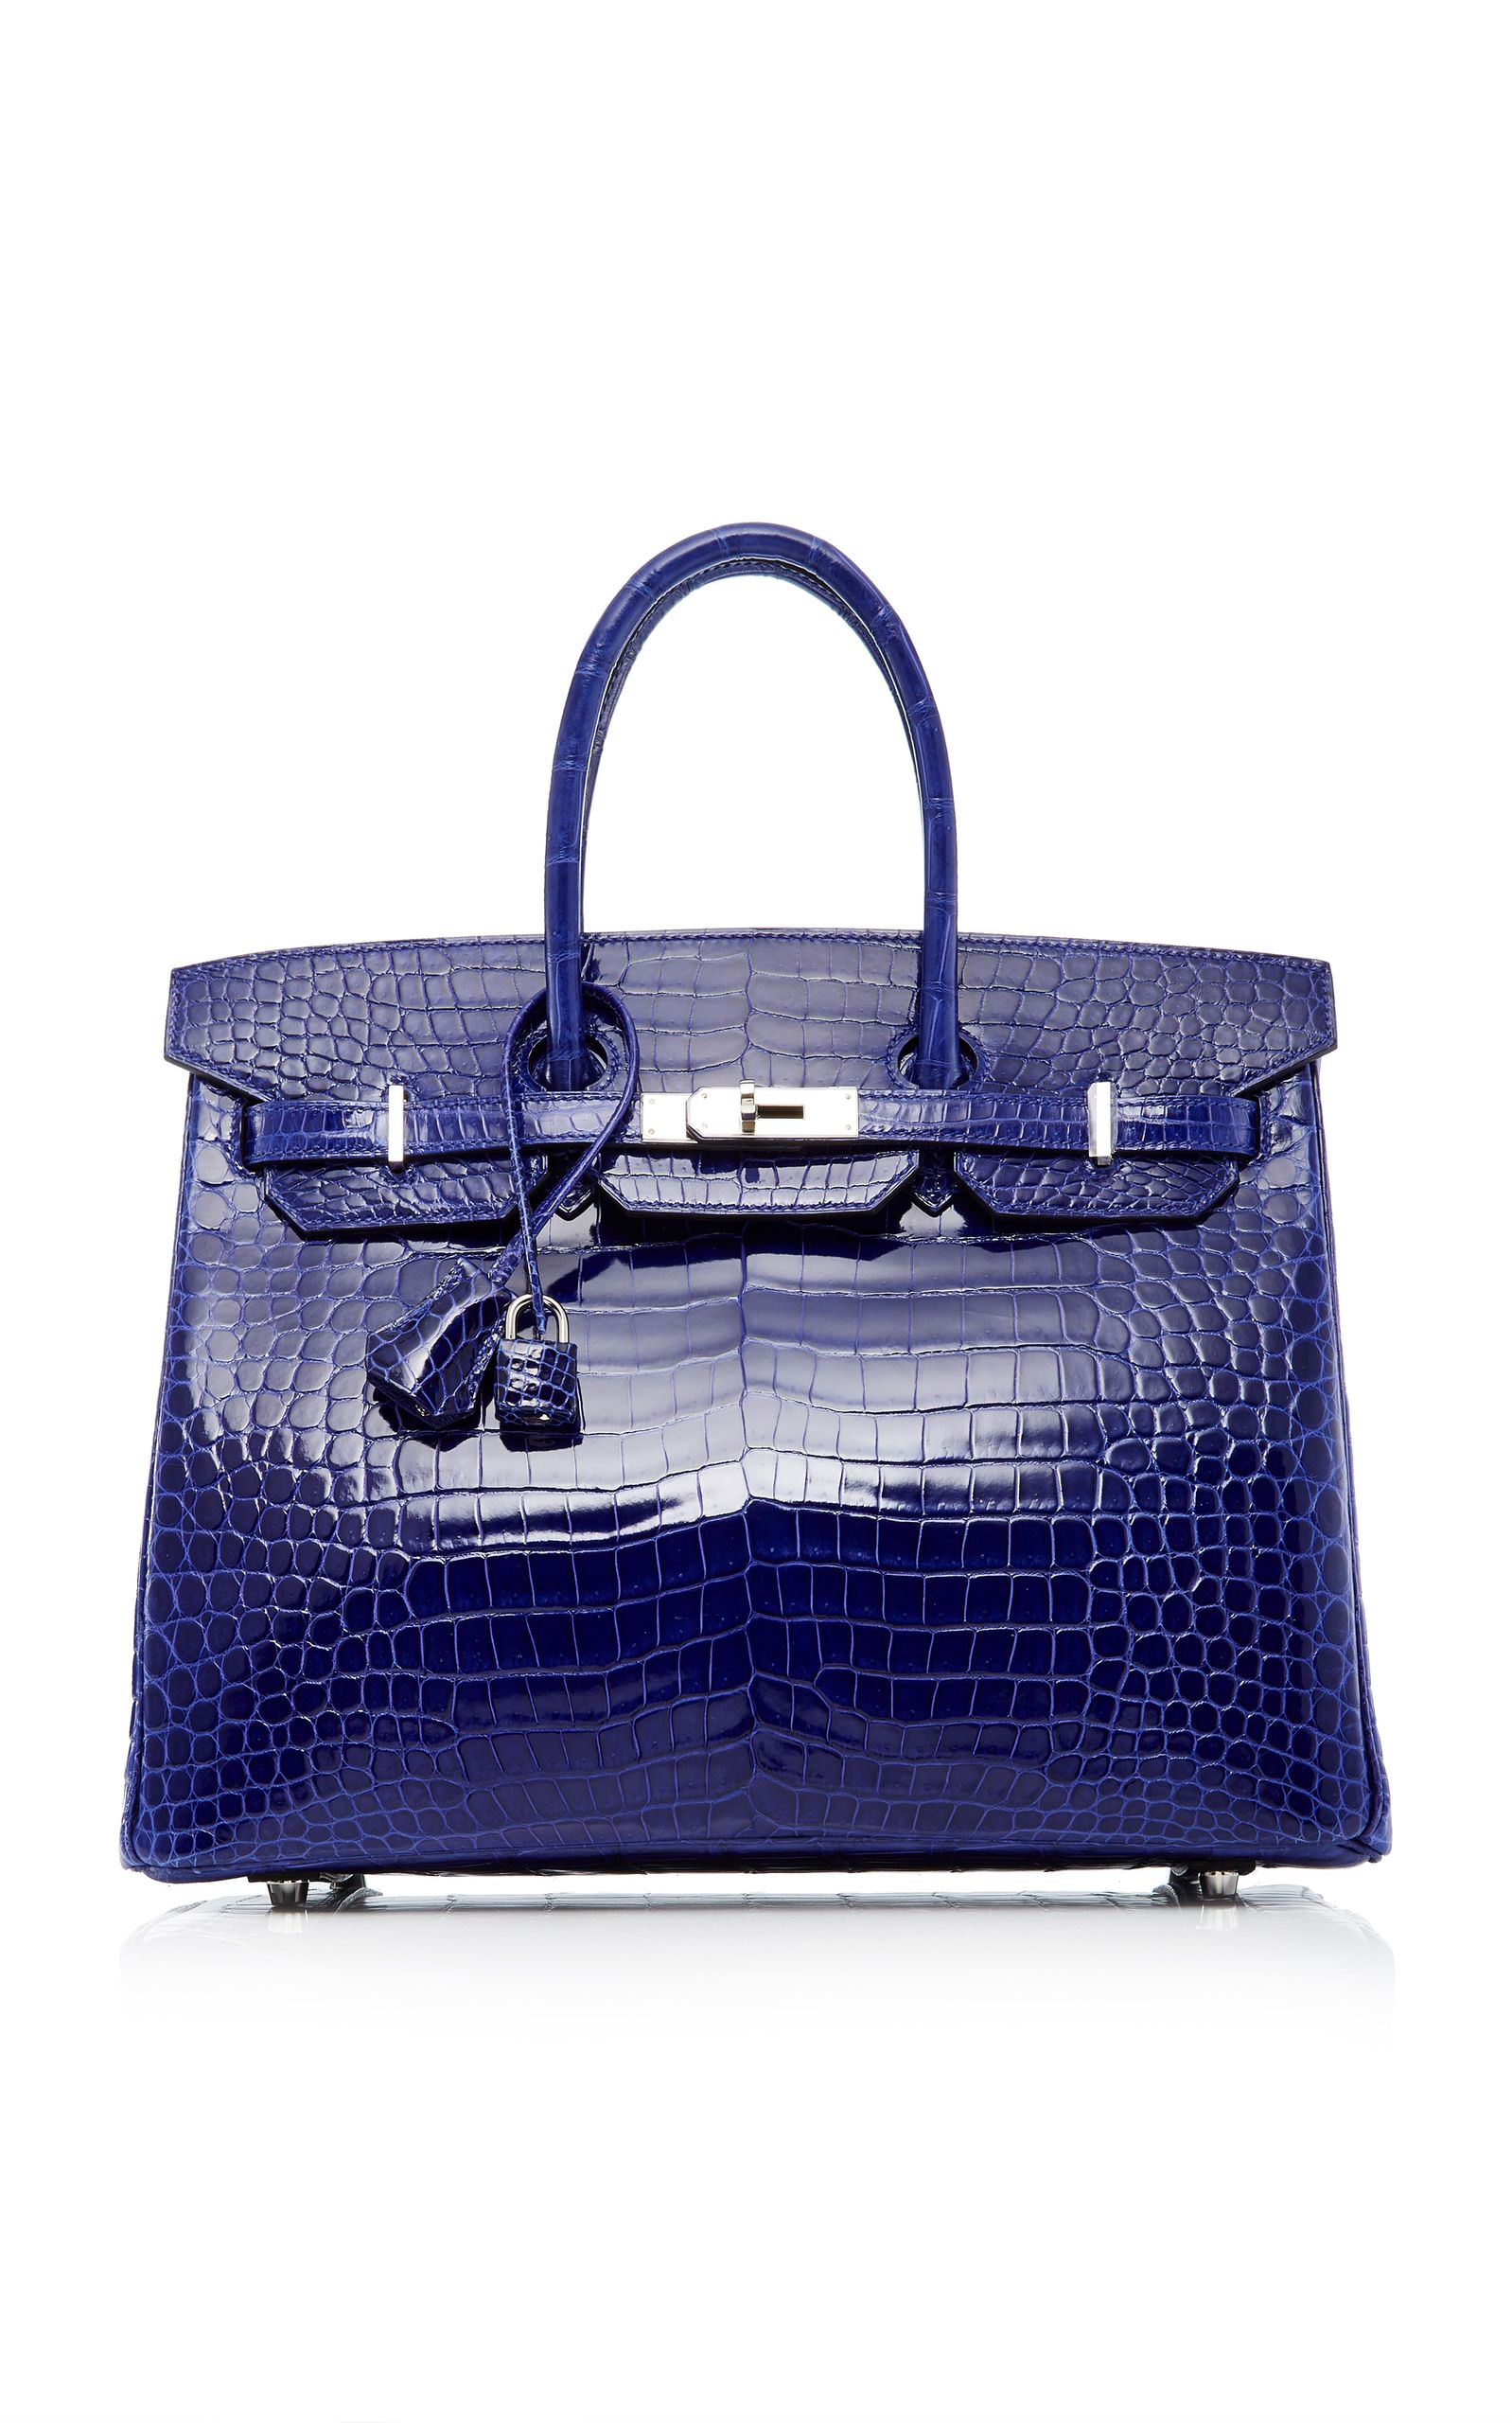 51f5c818b547 HERITAGE AUCTIONS SPECIAL COLLECTIONS HERMÈS 35CM BLUE ELECTRIC SHINY  POROSUS CROCODILE BIRKIN.  heritageauctionsspecialcollections